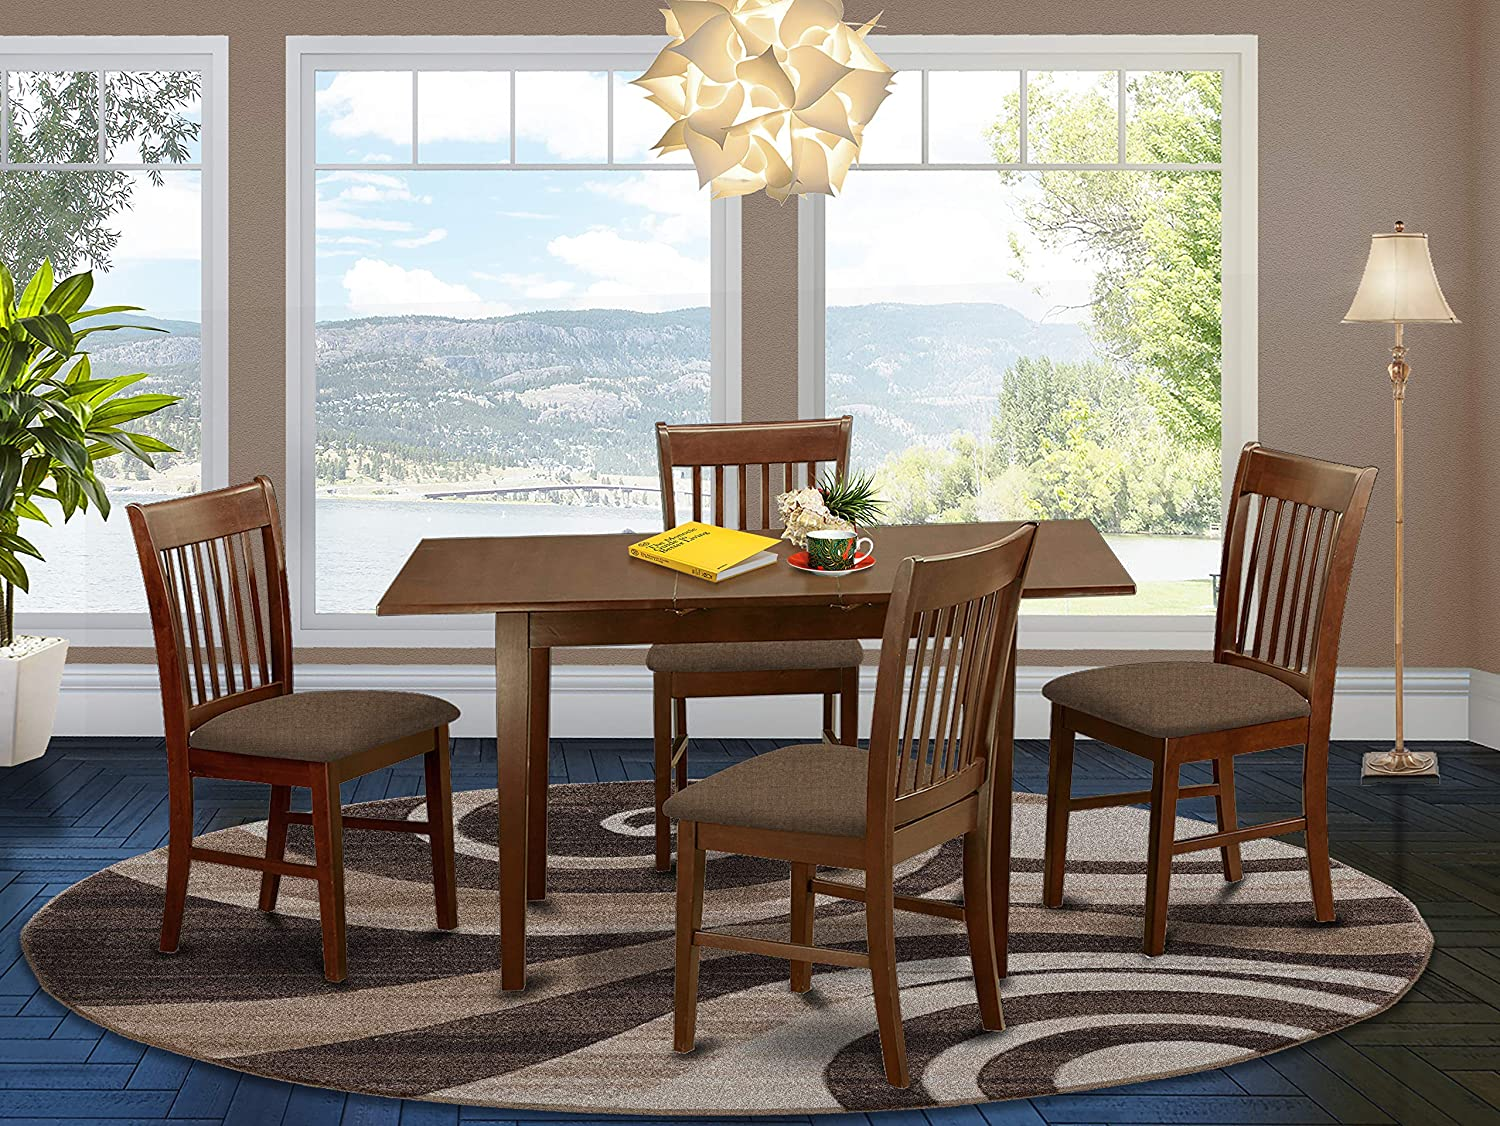 Amazon Com East West Furniture Nofk5 Mah C 5 Piece Dining Set 4 Dining Room Chairs And A Wooden Table Rectangular Table Top Slatted Back And Linen Fabric Seat Mahogany Finish Furniture